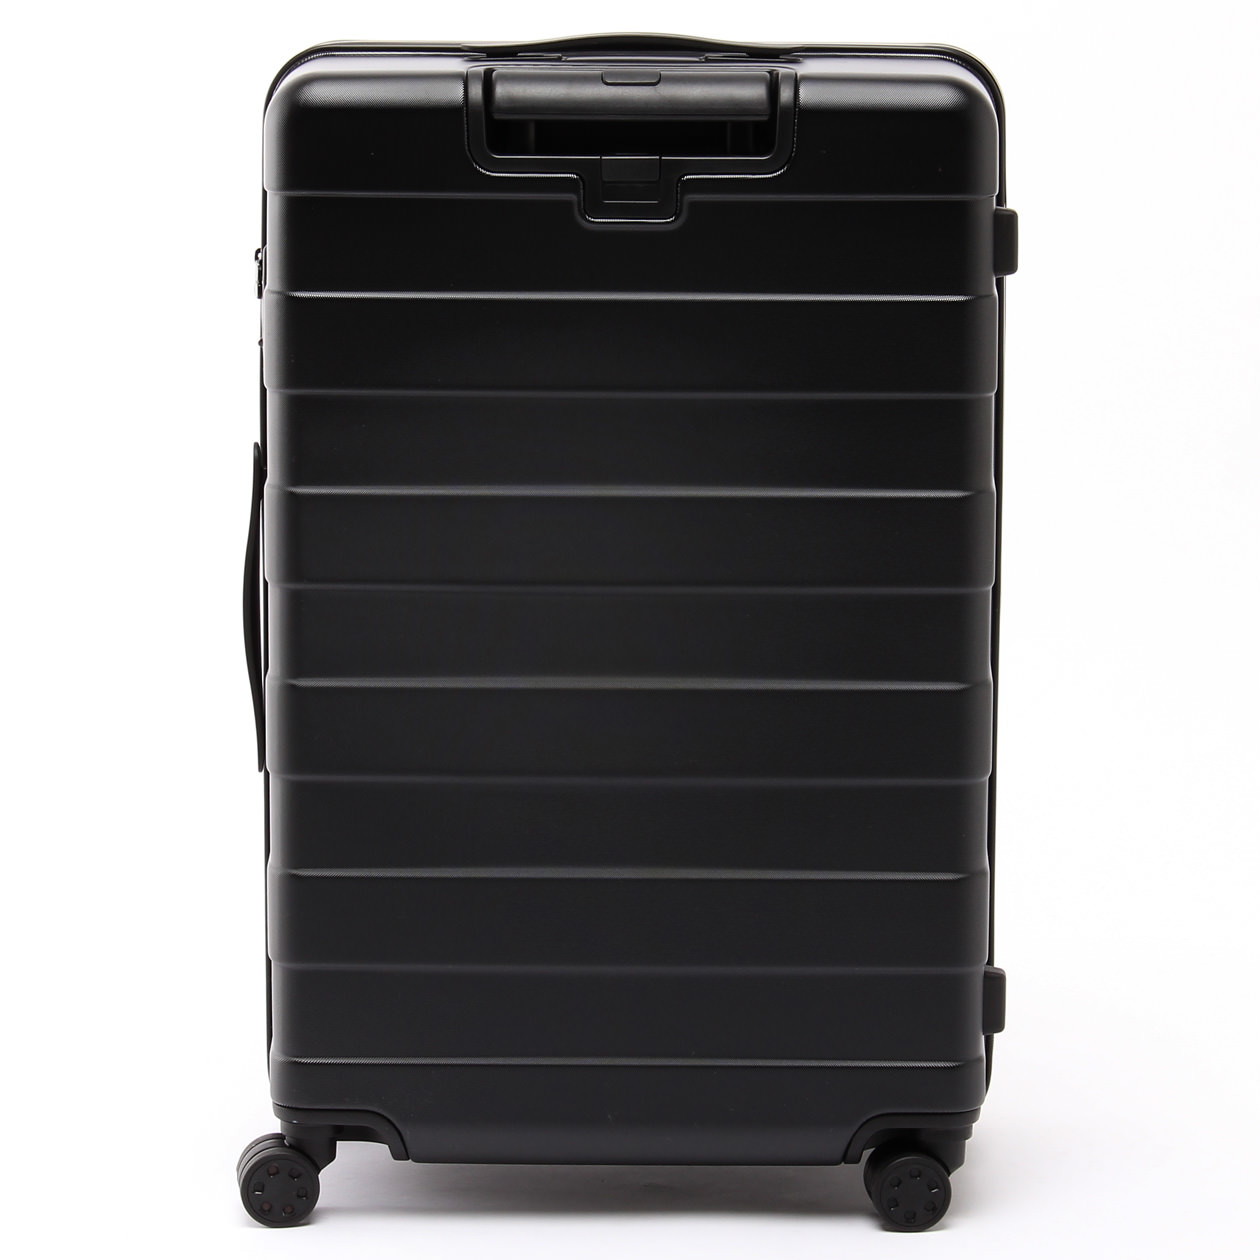 Valise Muji Polycarbonate Hard Carry Suitcase With Stopper 87l 無印良品 Muji